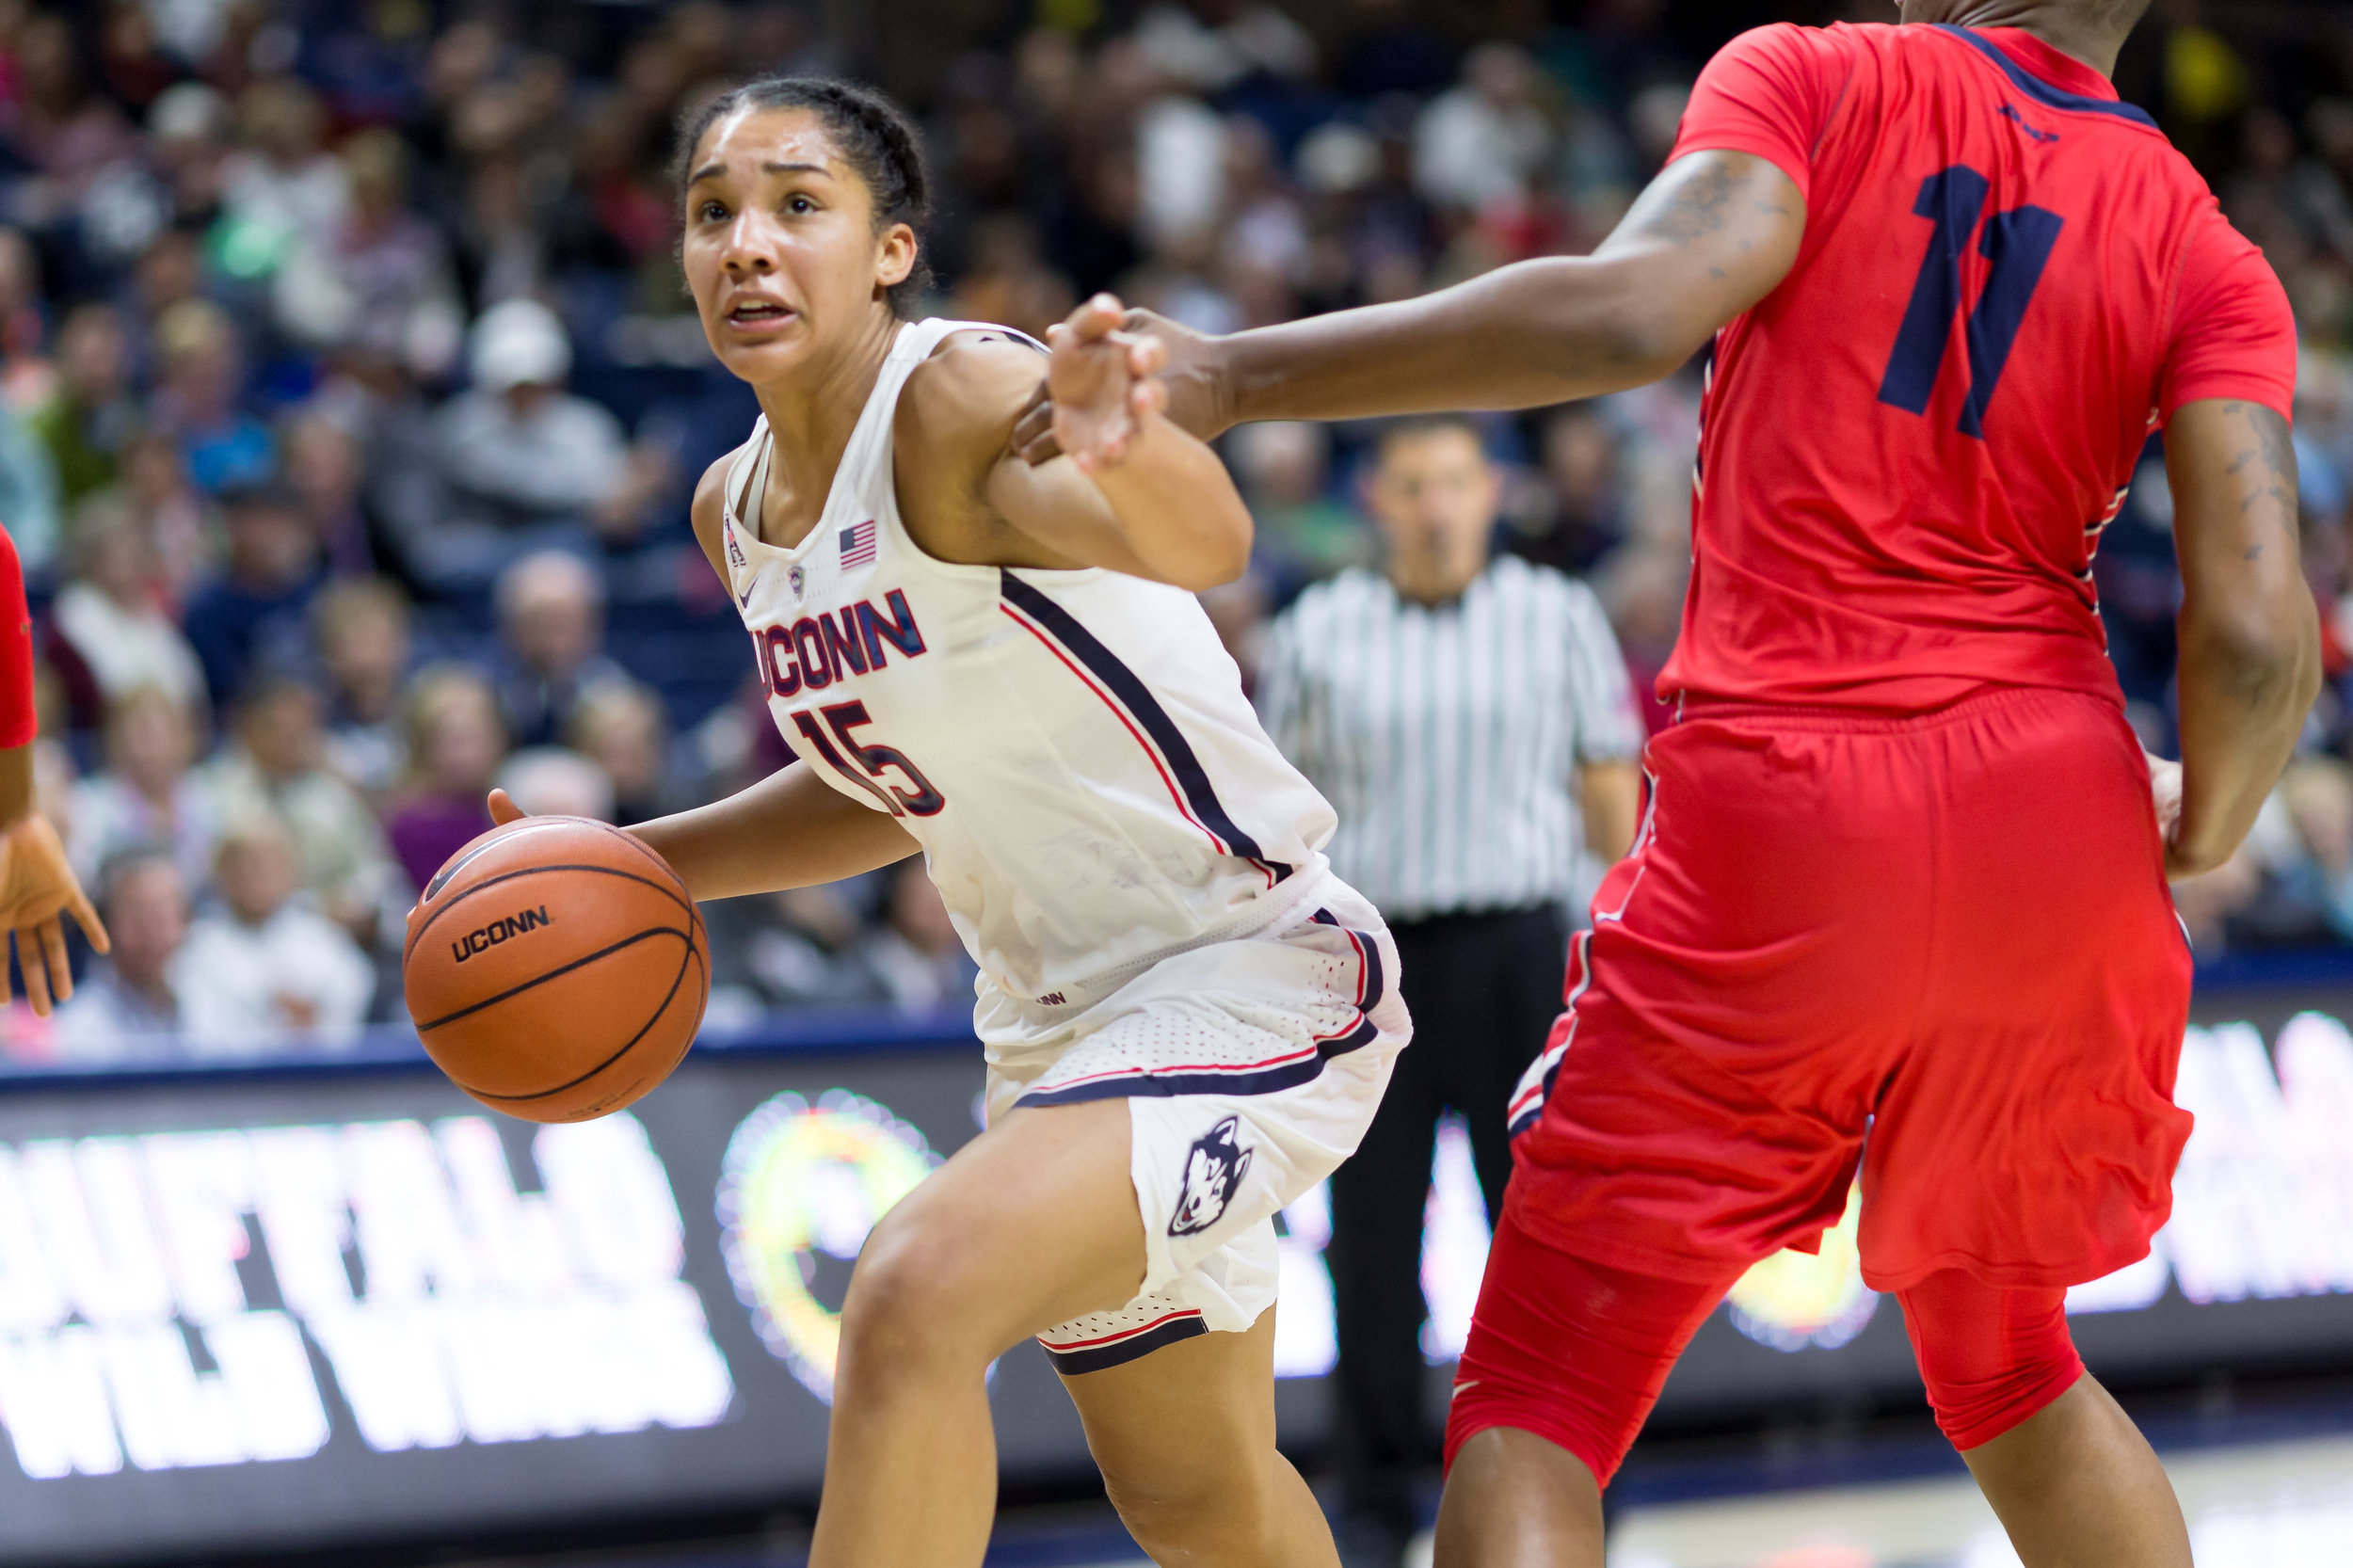 UConn's Gabby Williams dribbles past Dayton's Alex Harris in the Huskies 98-65 win on Nov. 22, 2016 at Gampel Pavilion. (Tyler Benton/The Daily Campus)